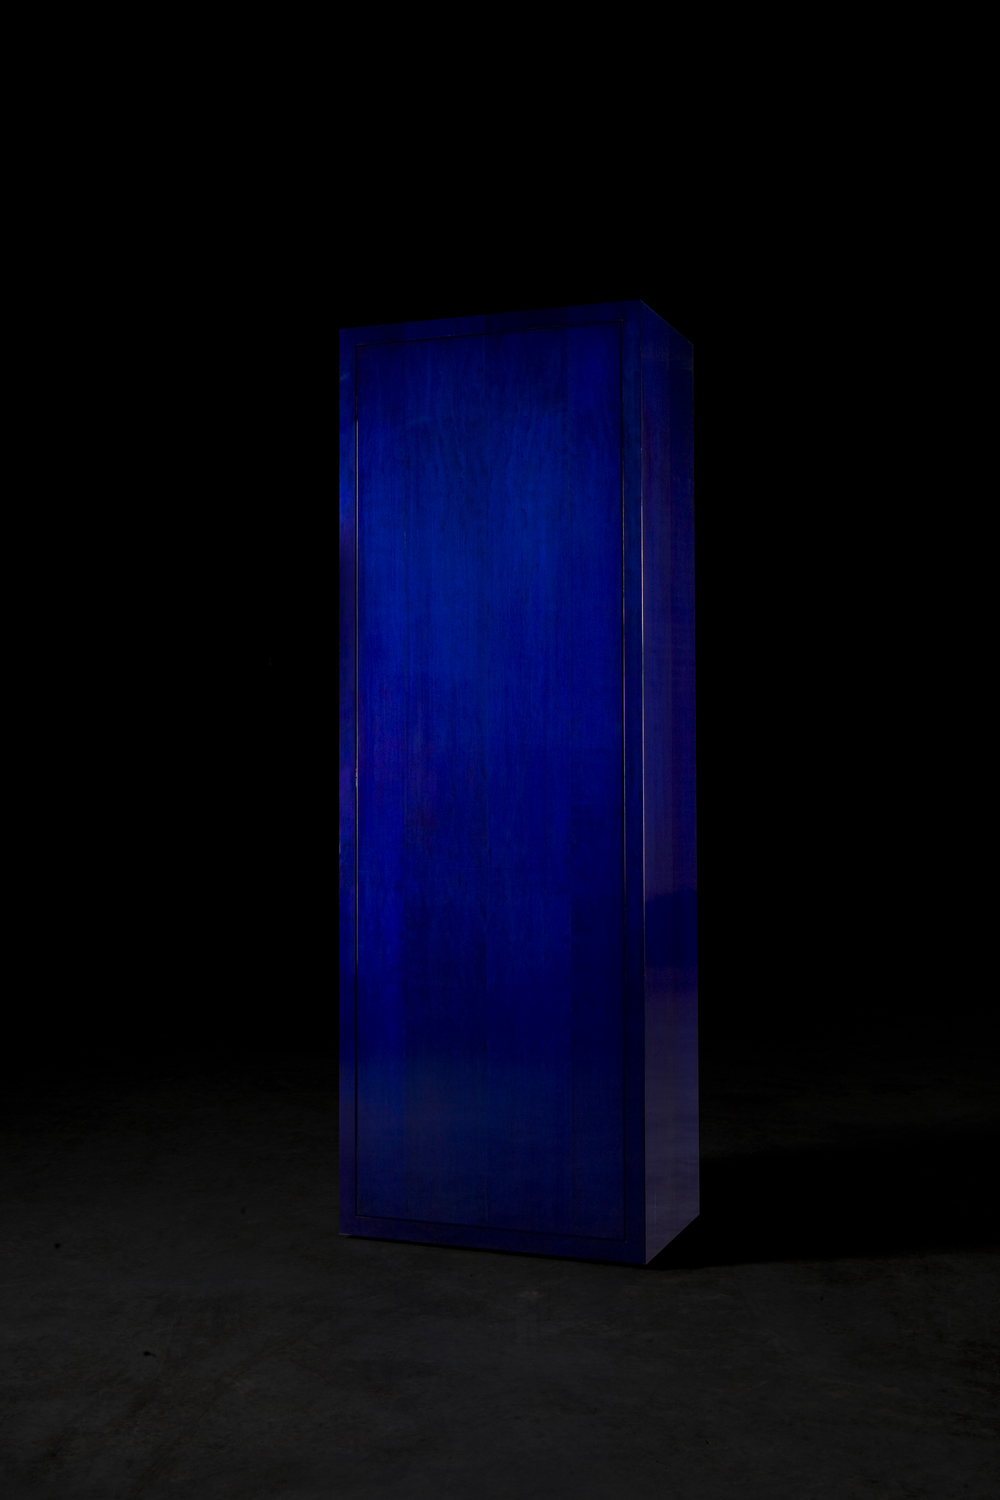 BiC Blue Year: 2009 Materials: American maple veneer, BiC ink, French polish Dimensions: 200 x 70 x 43 cm Winner of the Wallpaper Design Awards 2010 for the Best Use of Color Project realised with kind help of Societé BiC